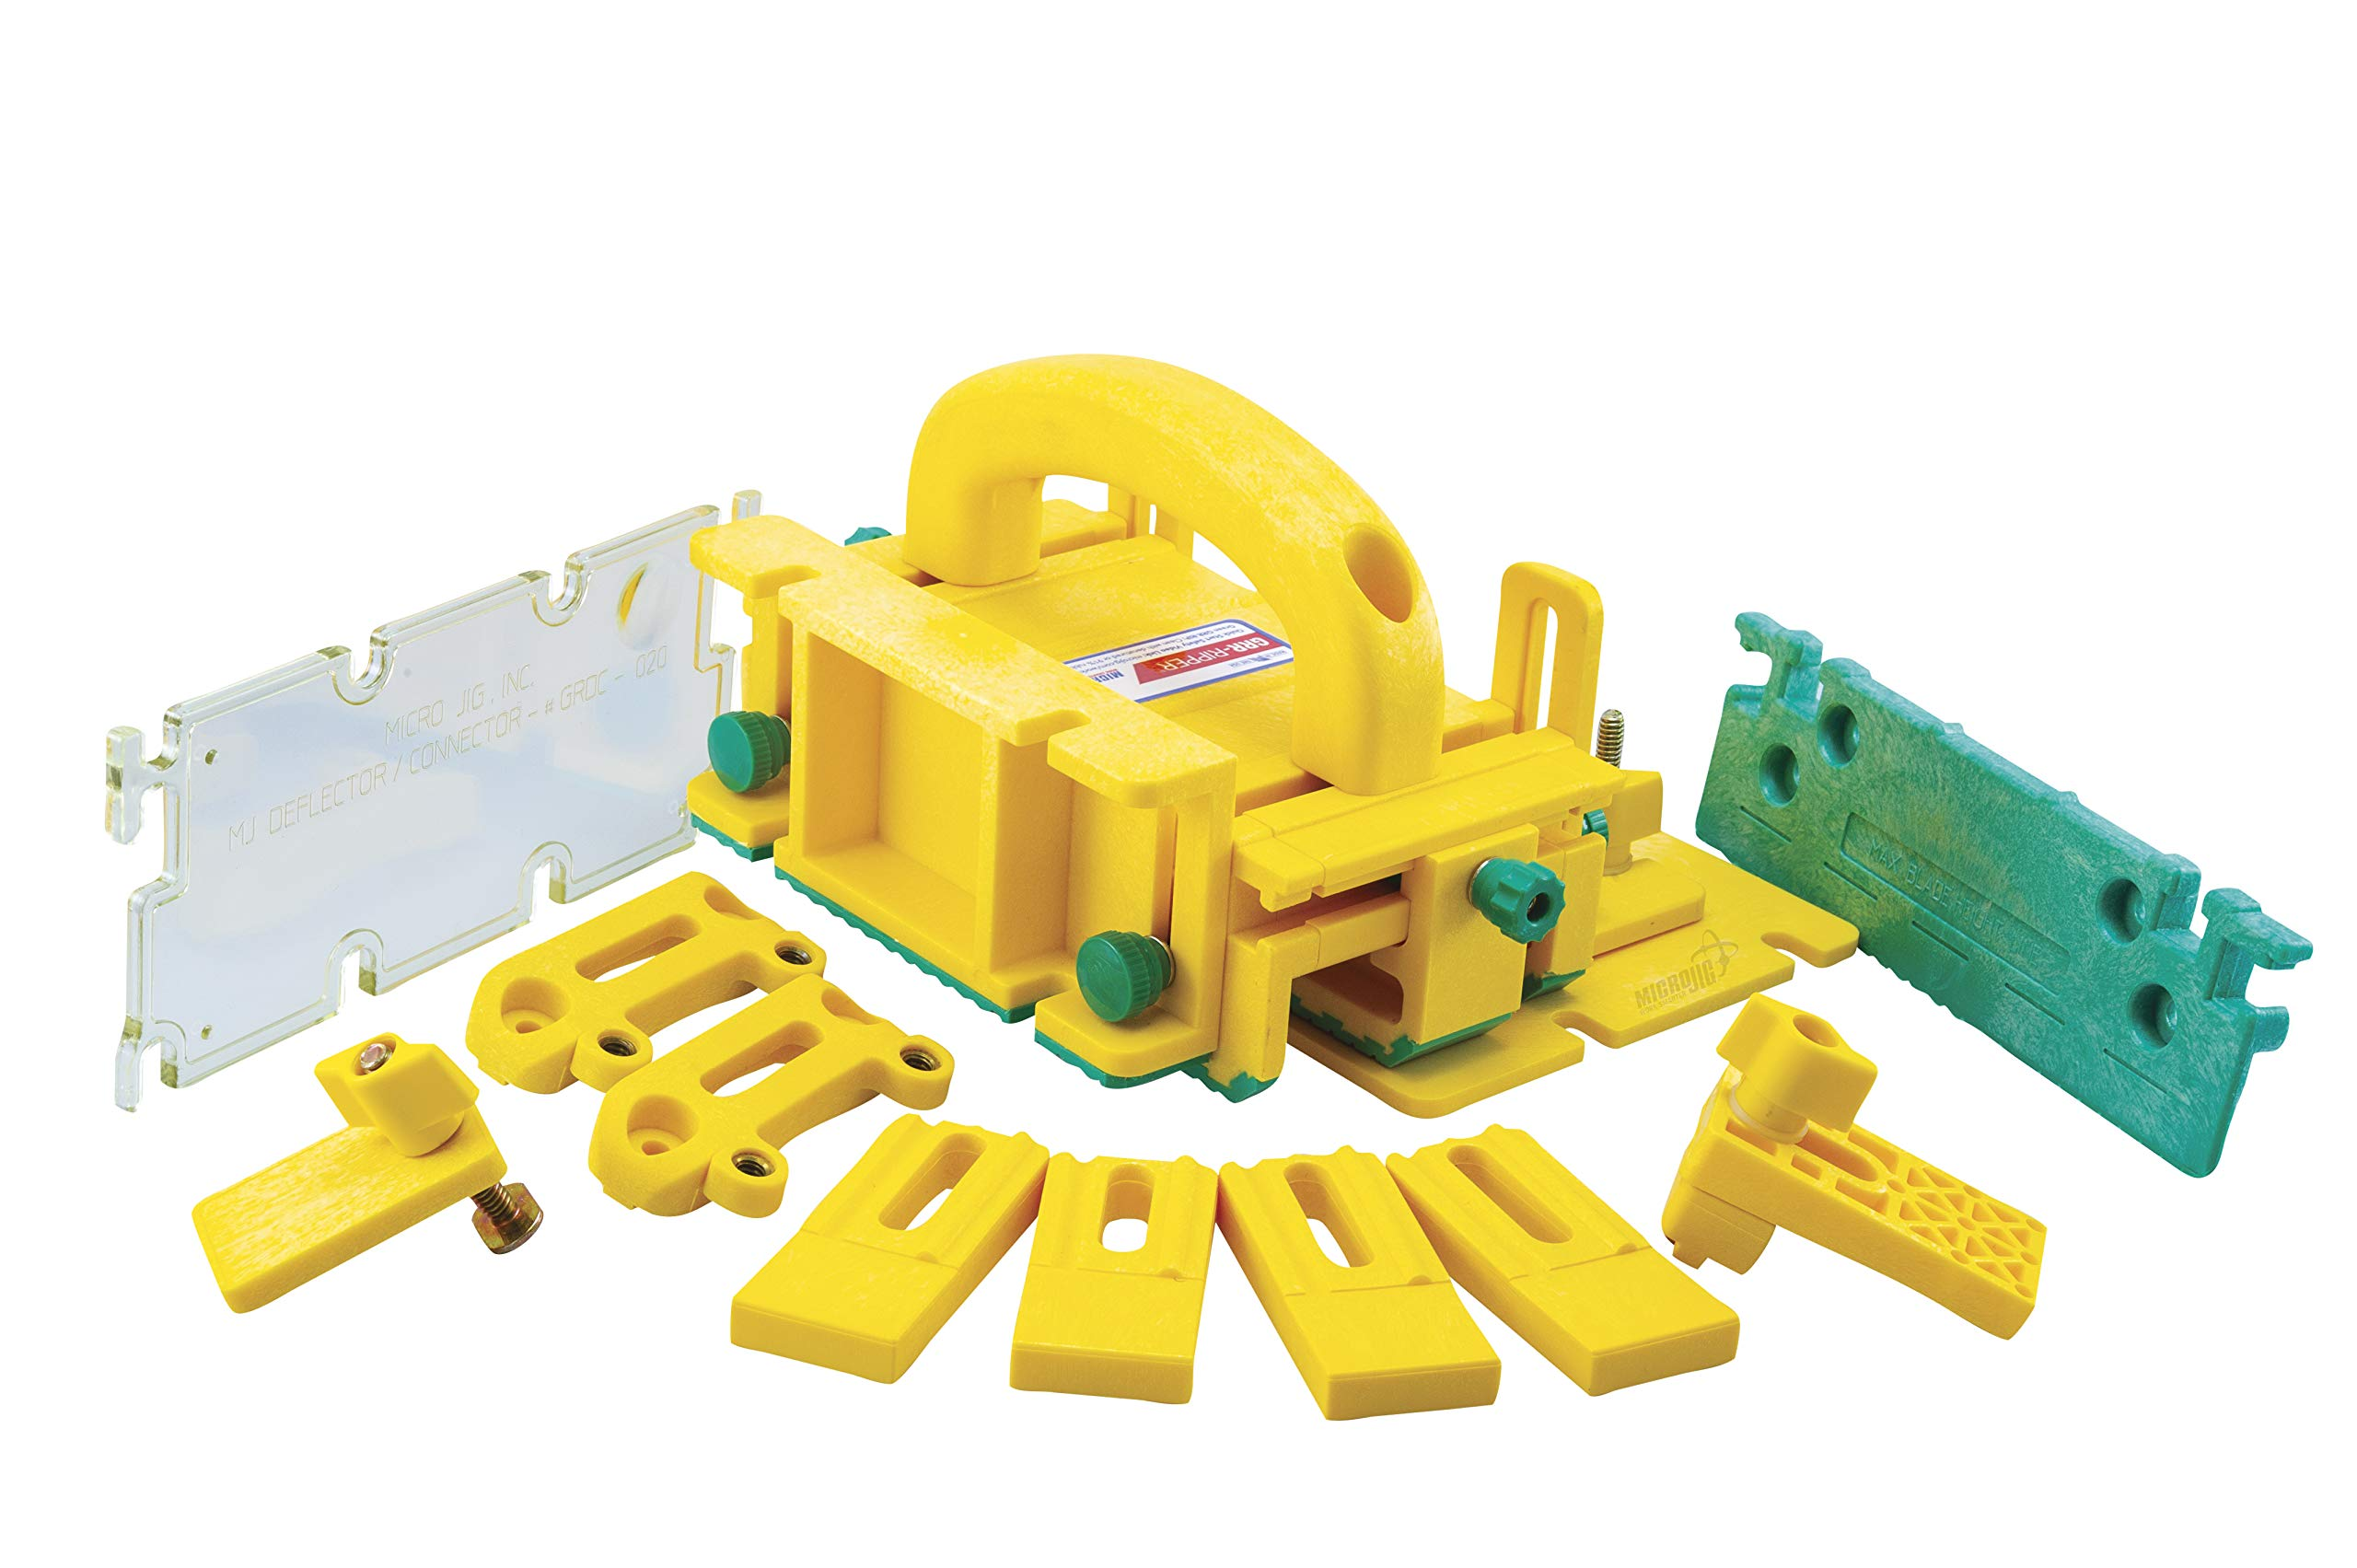 Micro Jig GR-281 Total 3D Single Pack Pushblock System, Yellow by MICRO JIG